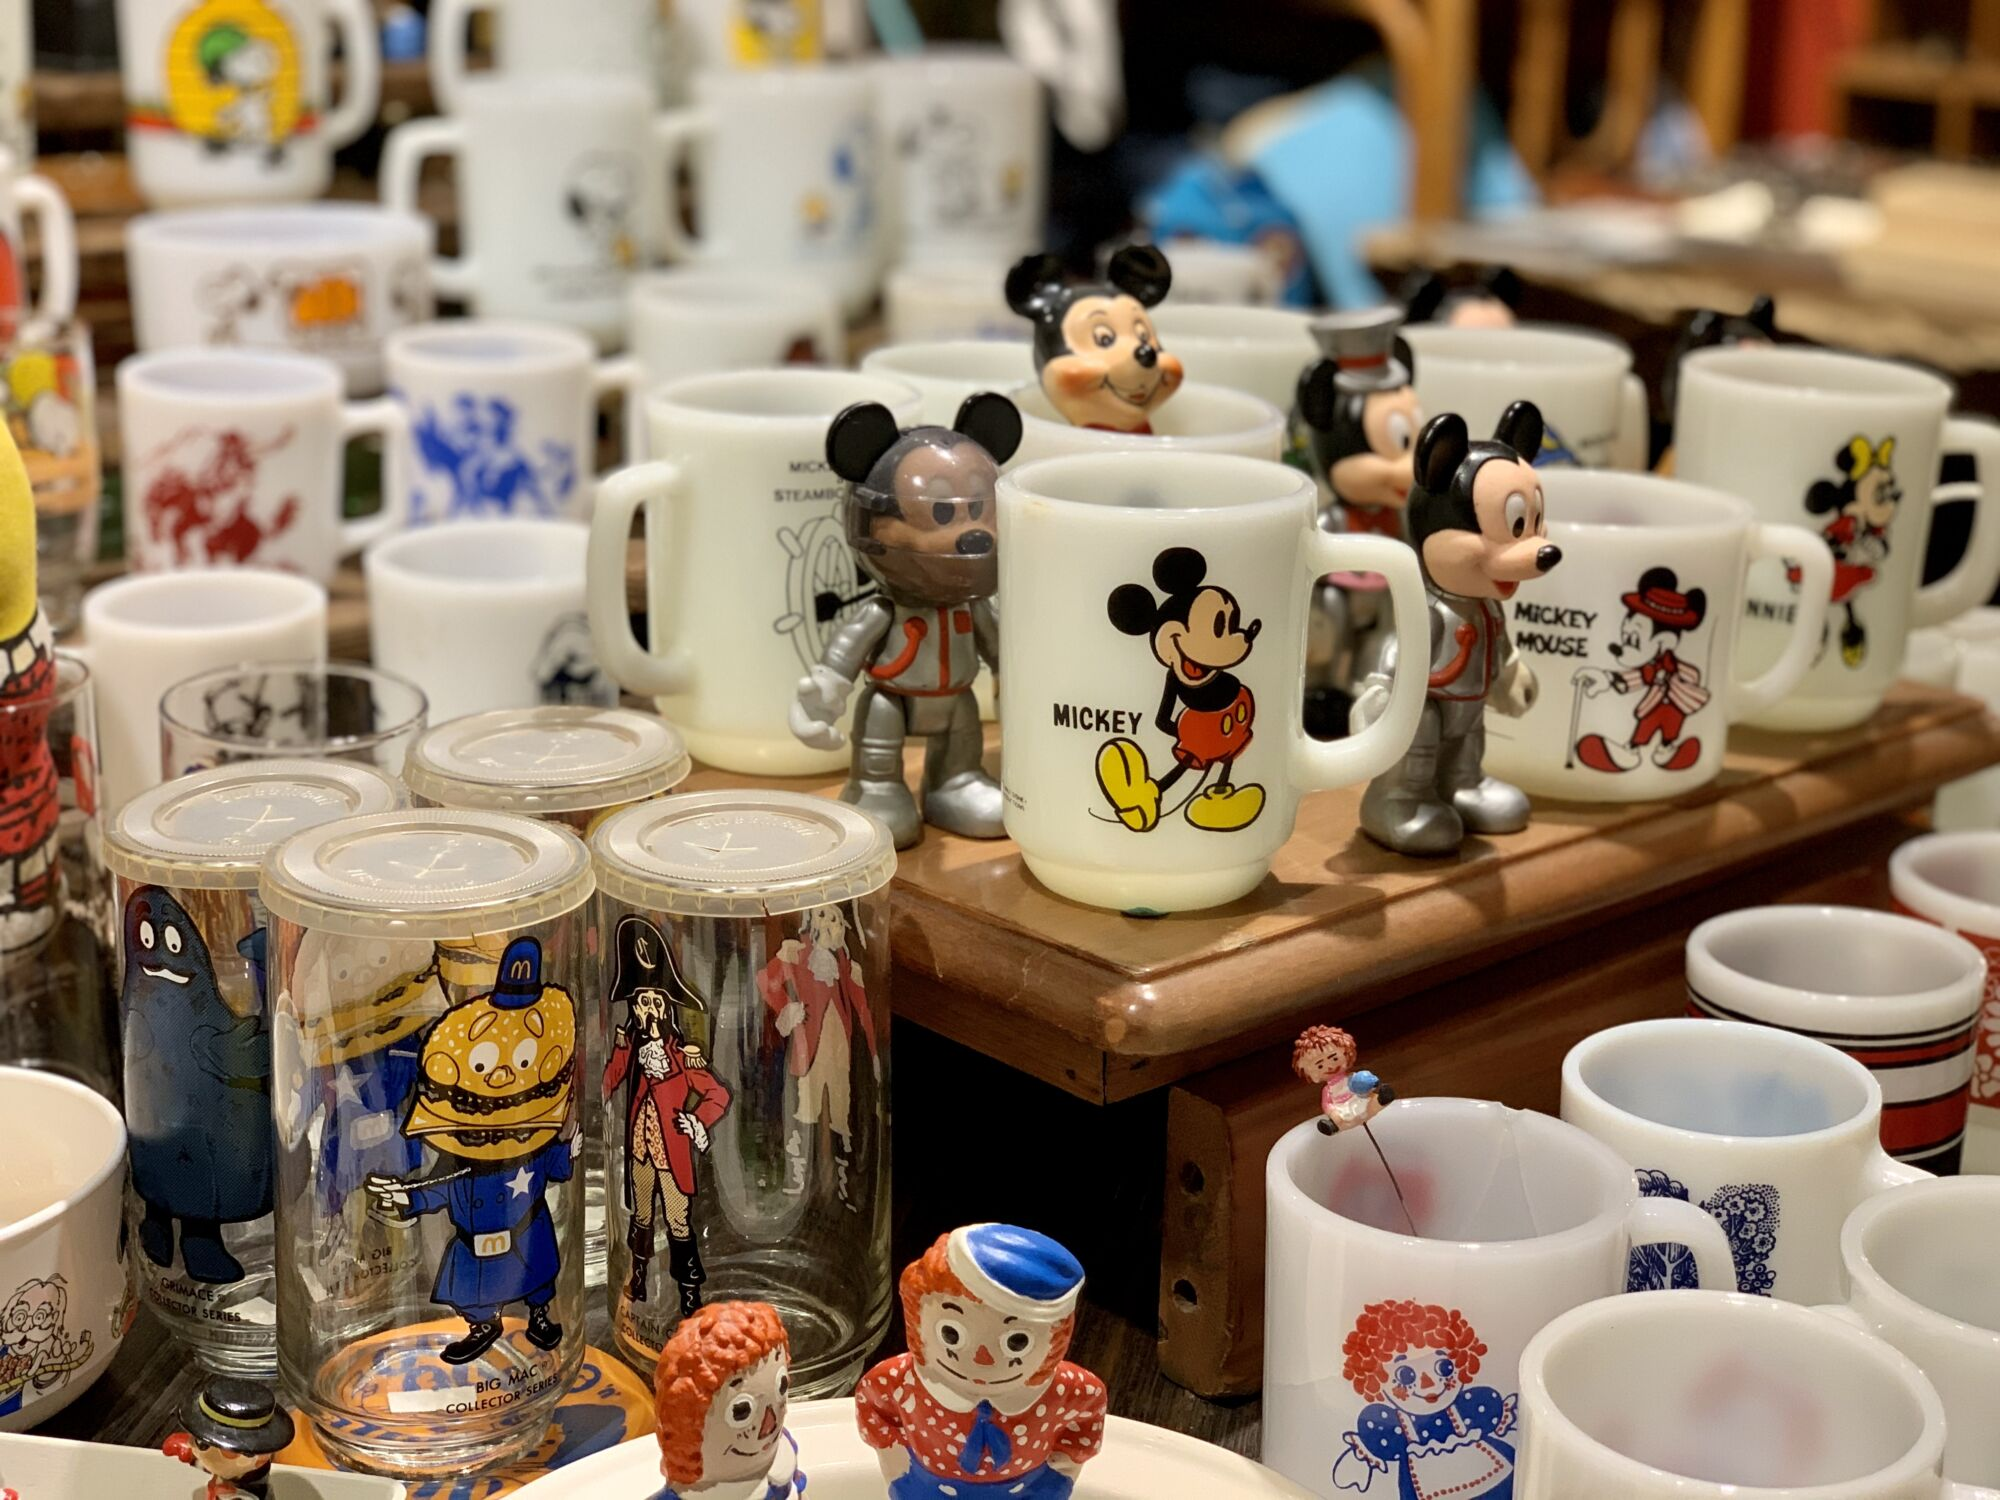 Collectore Vintage Shop Cups Collection Macau Lifestyle